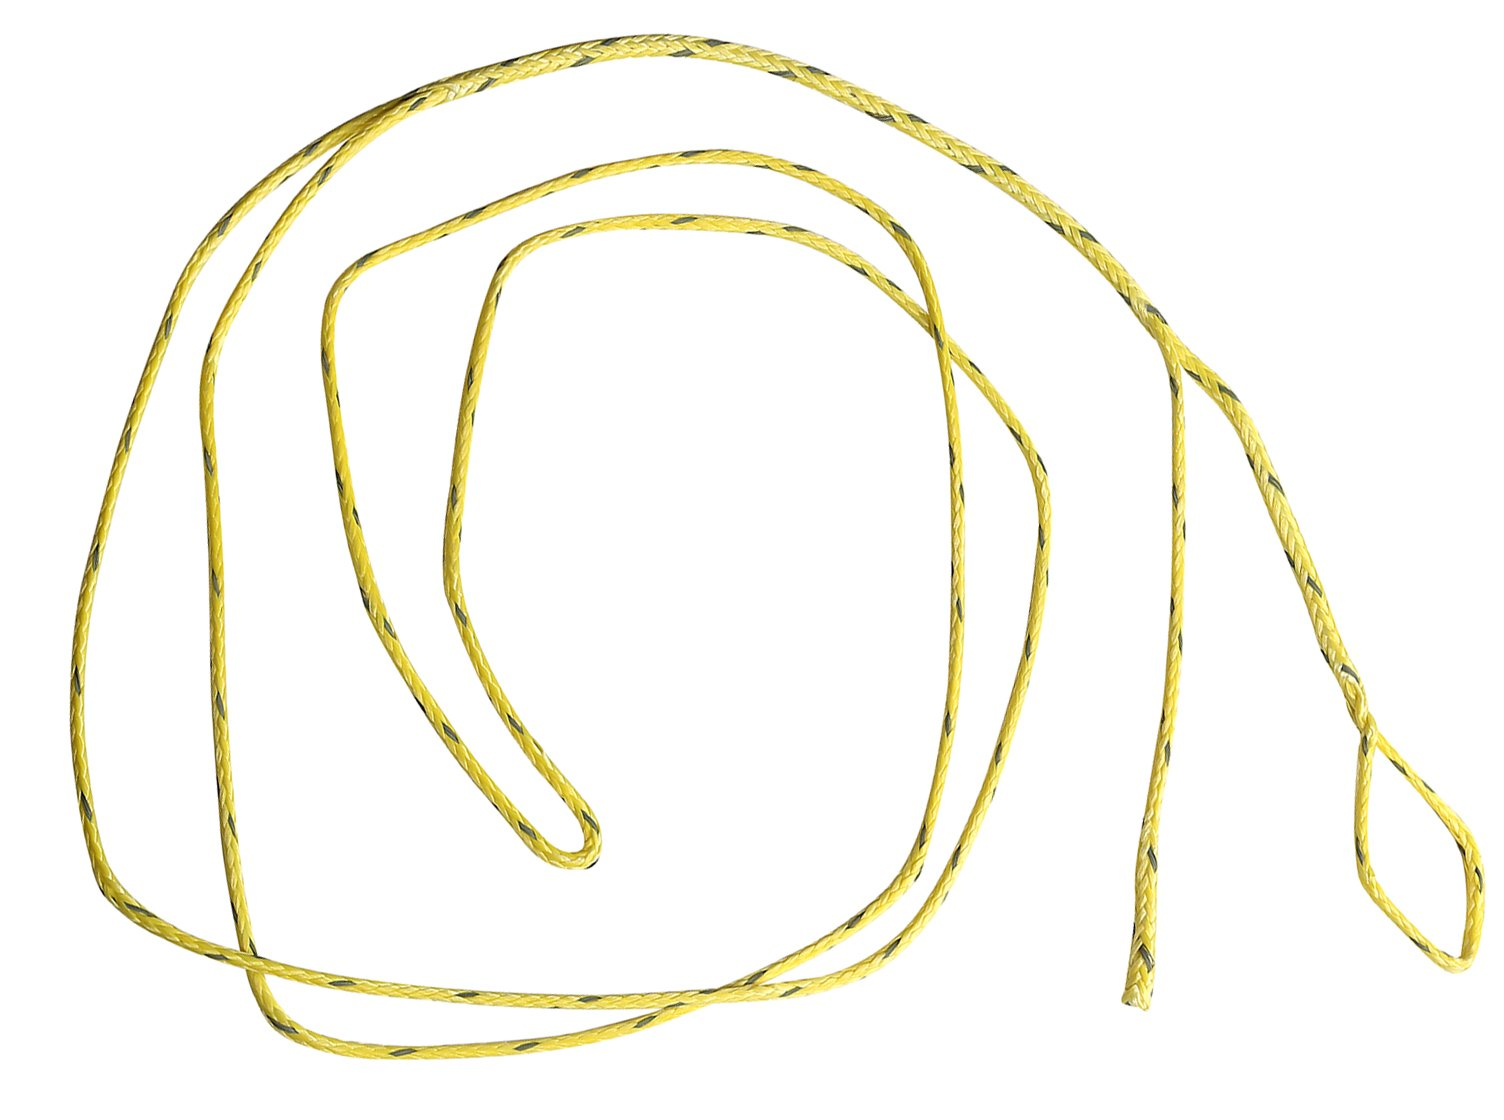 Ymiss UHMWPE Hammock Whoopie Slings Set of 2 Adjustable Camping Ropes Yellow with Reflective Fleck Color